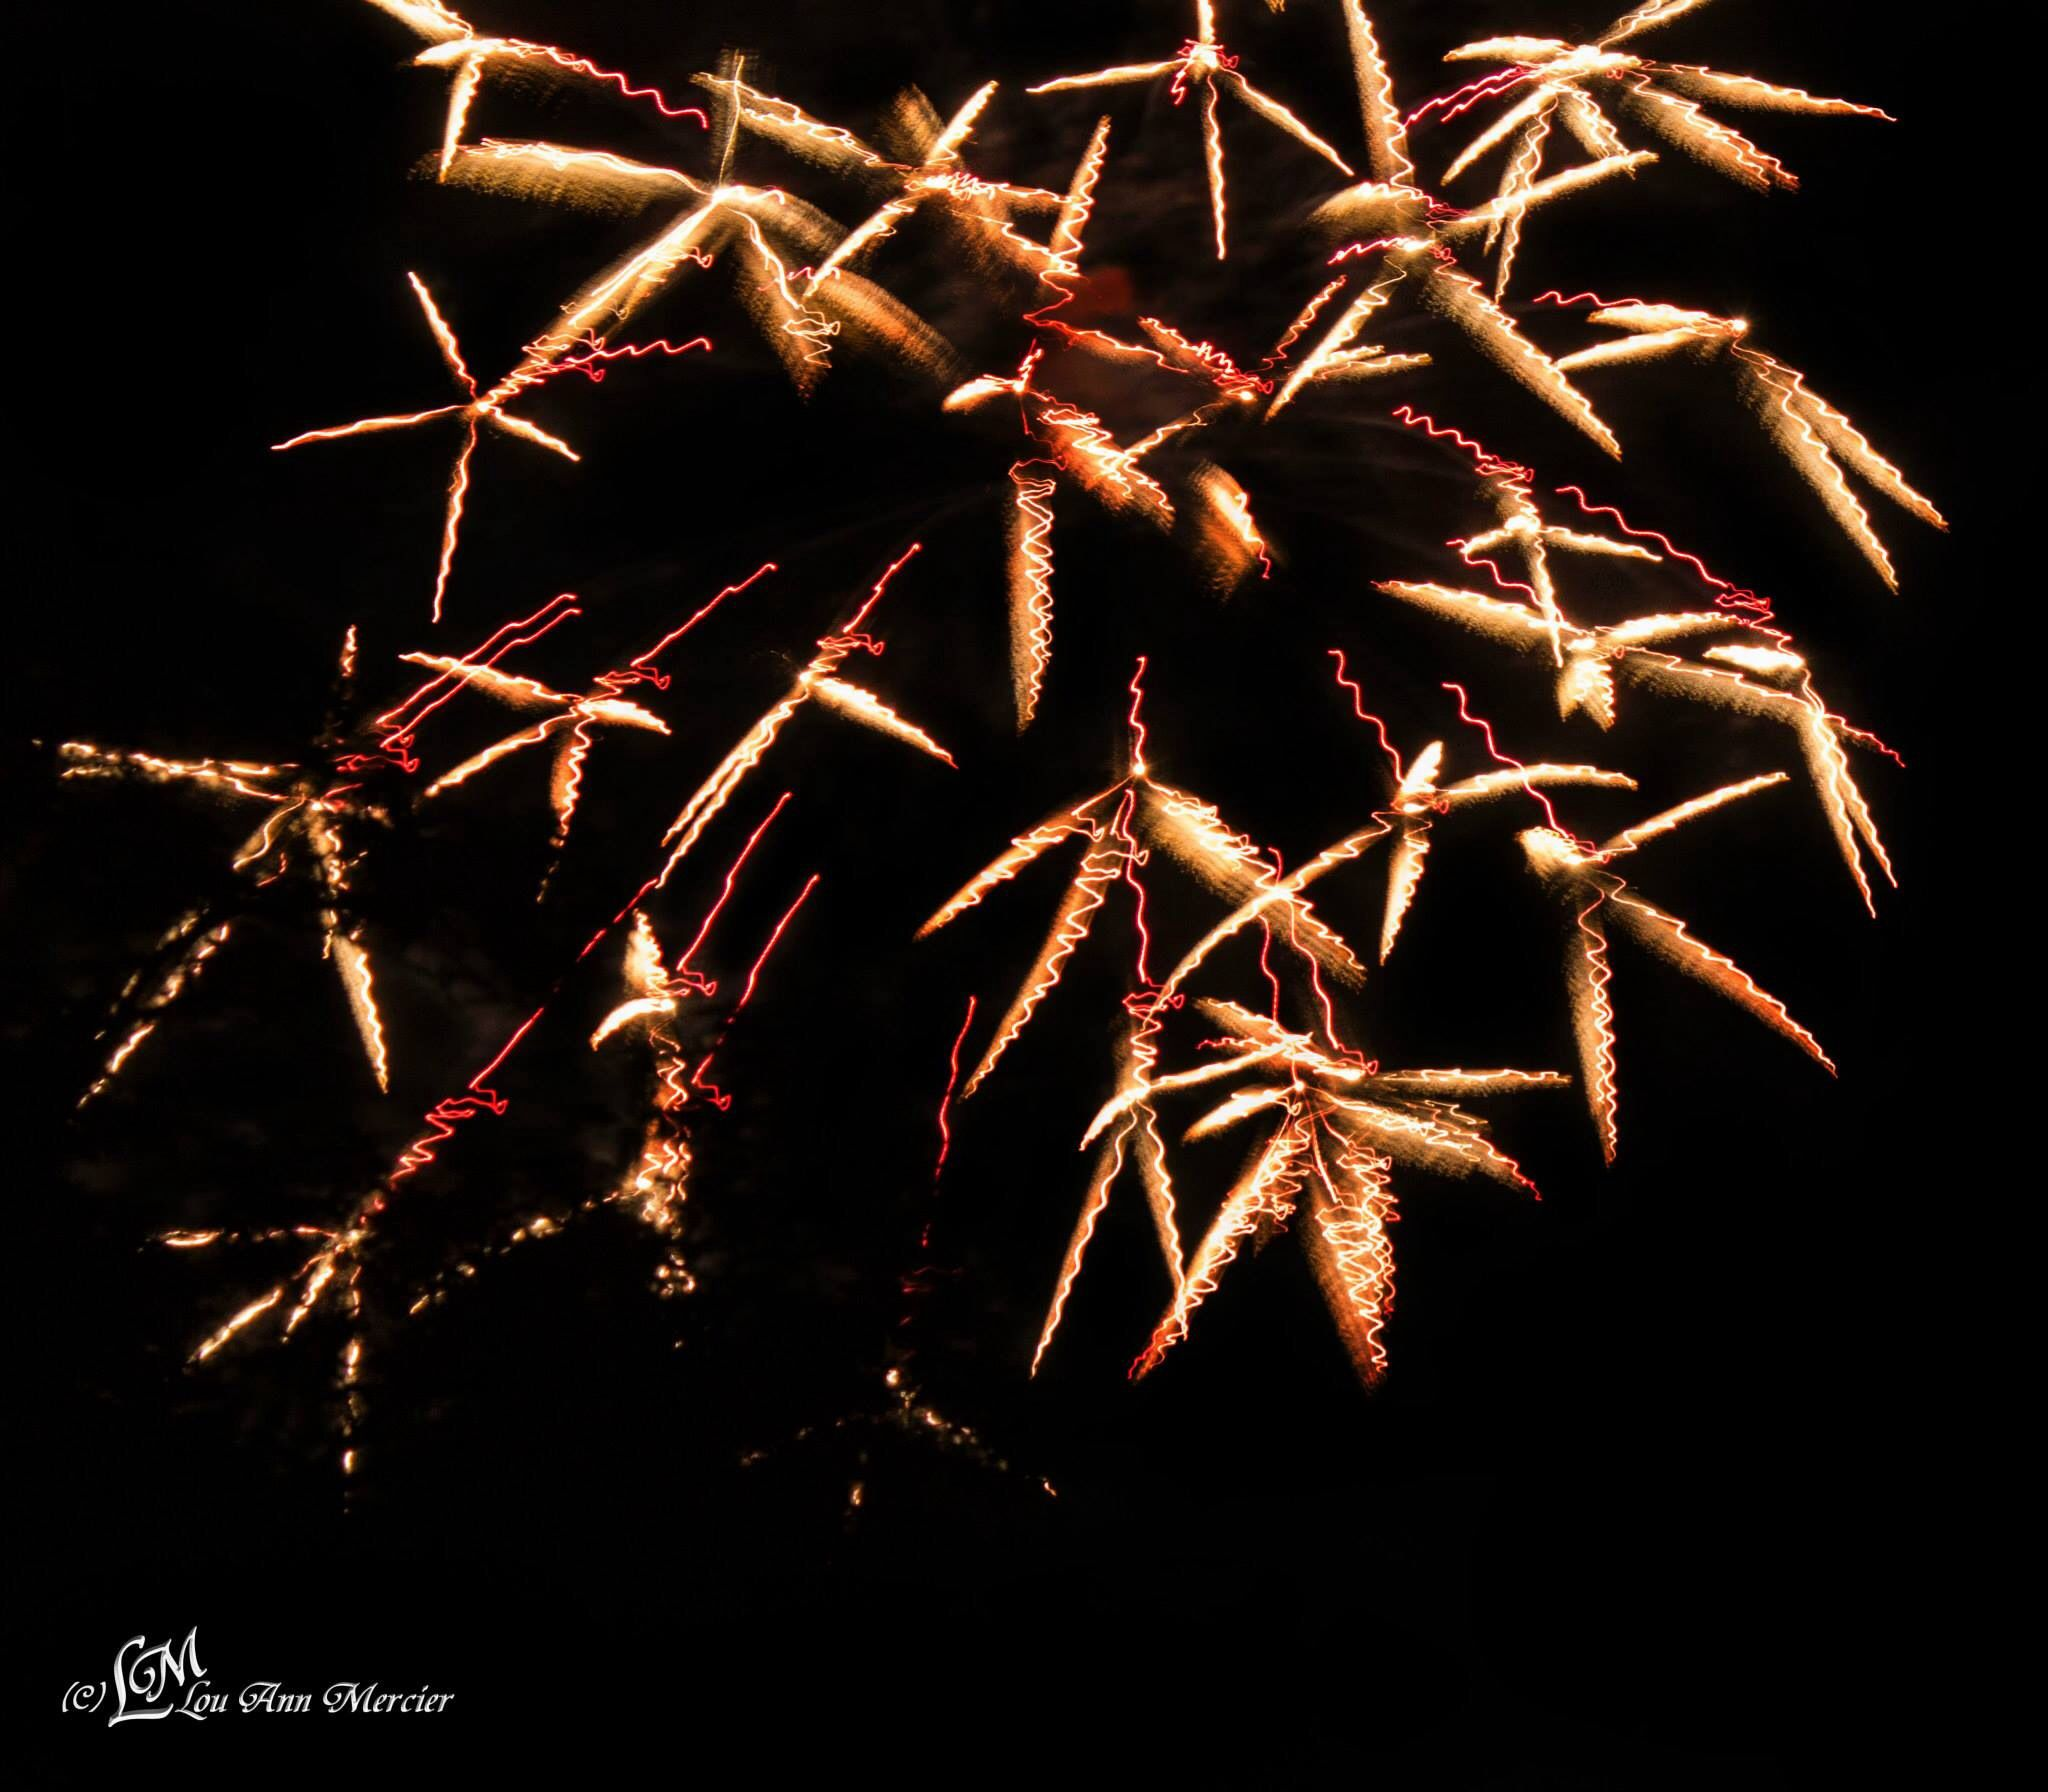 One of my favorites from this weekends fire works in Boonsboro, MD